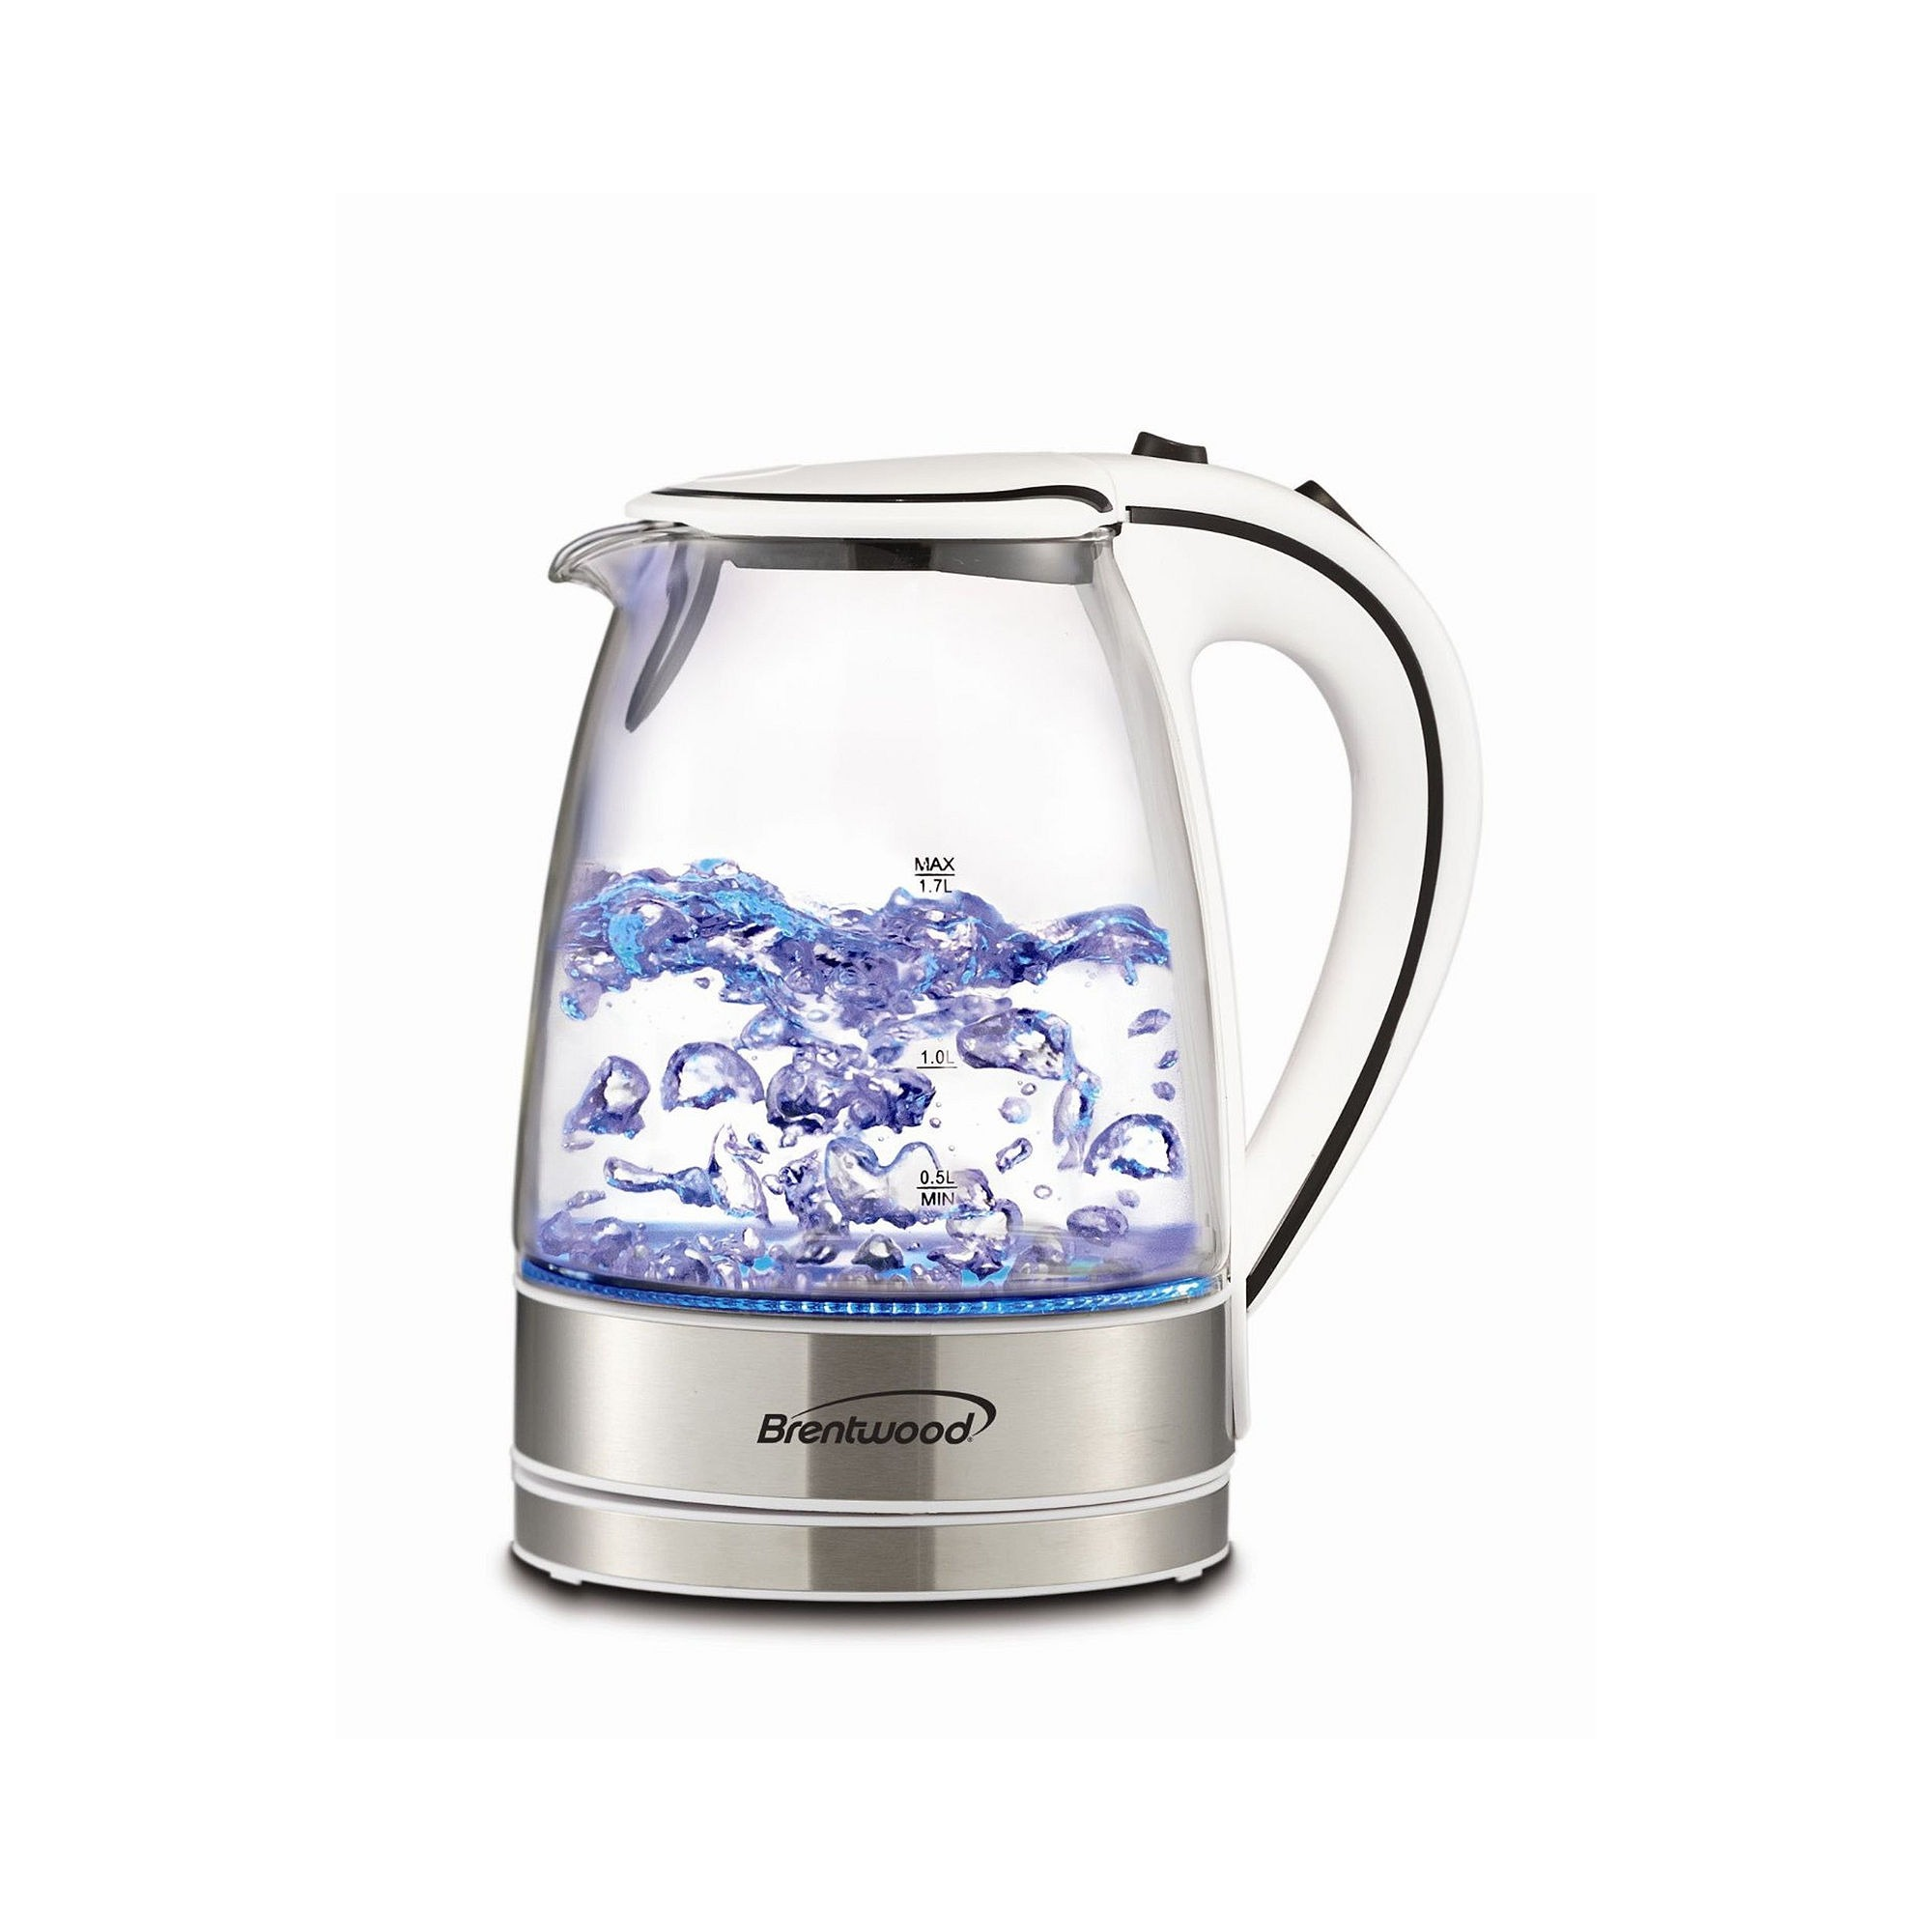 Brentwood Tempered Glass Tea Kettle